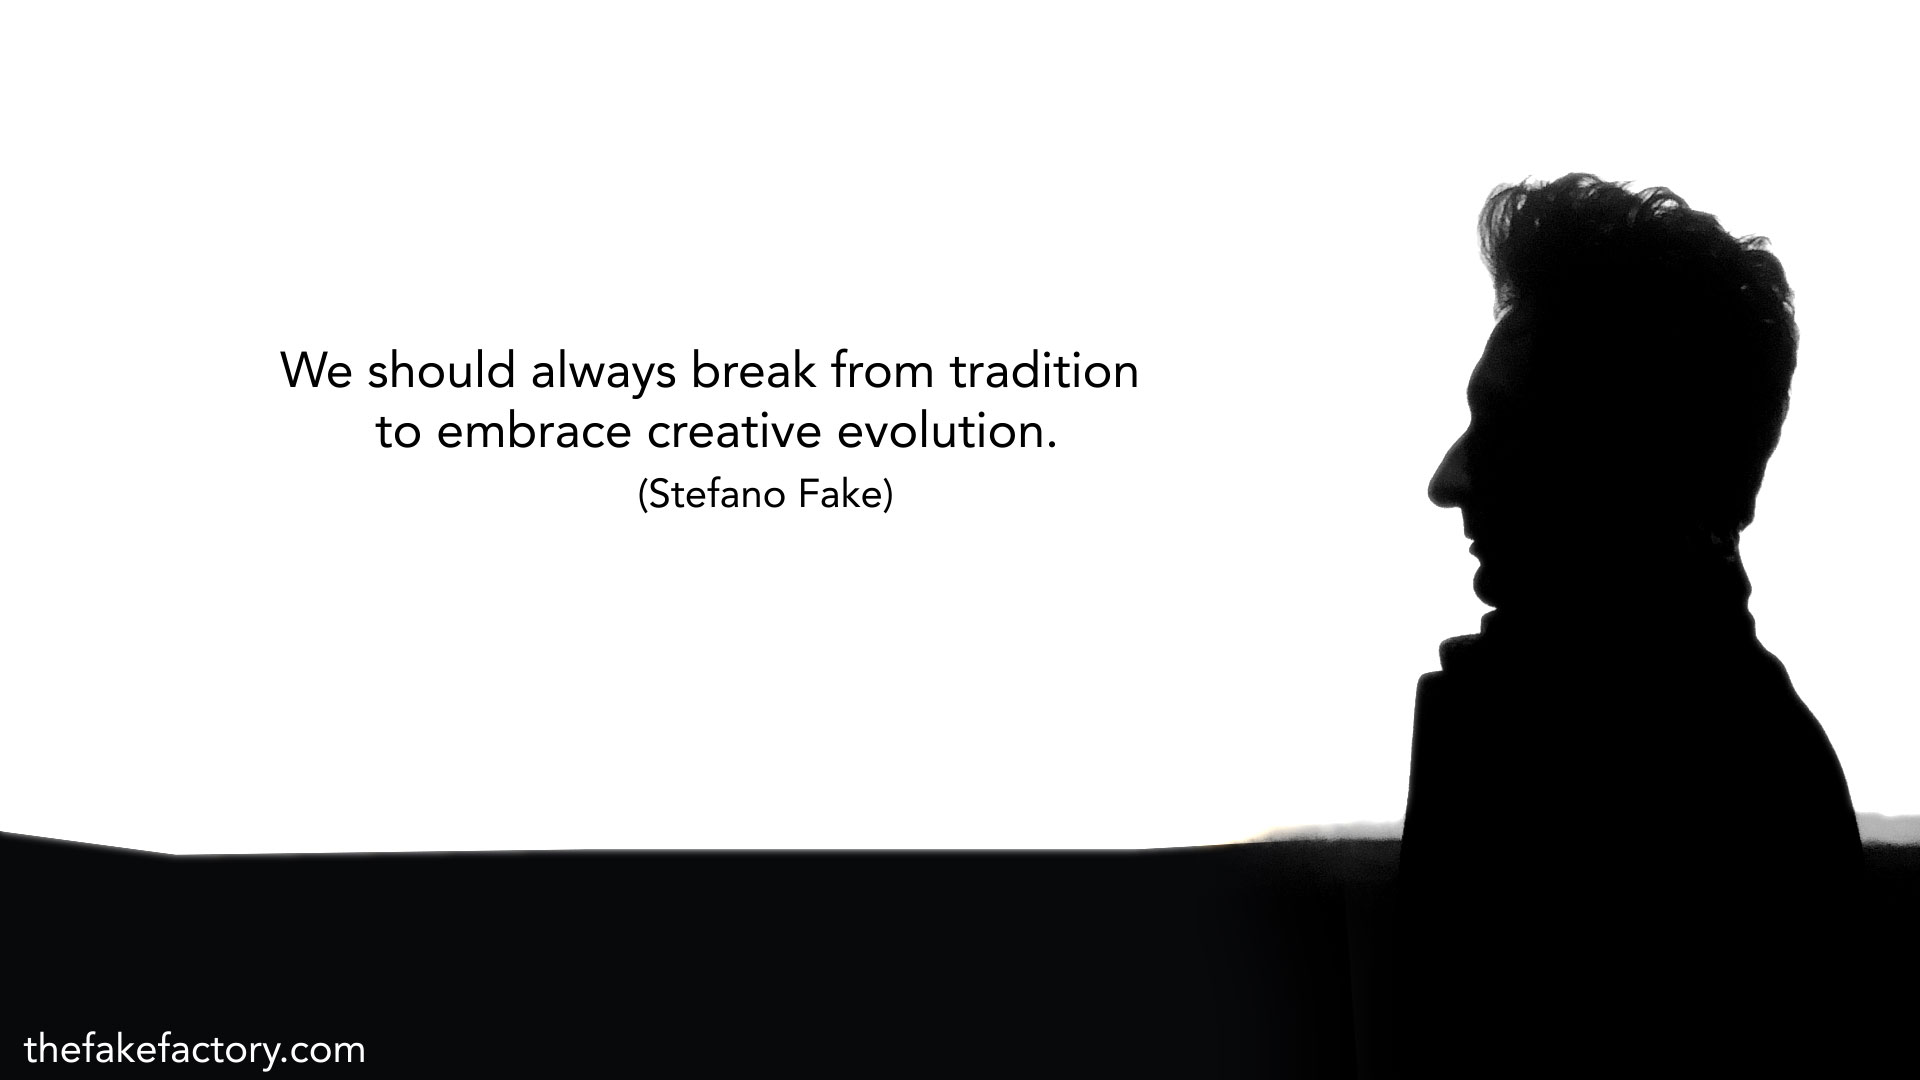 STEFANO FAKE THE FAKE FACTORY philosophy_00000